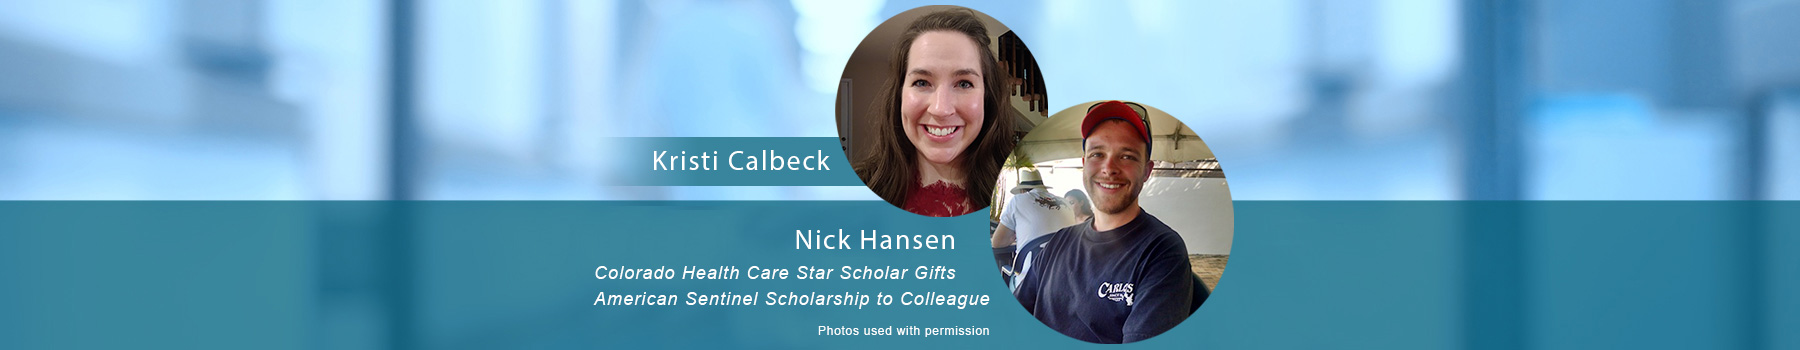 Colorado Health Care Star Scholar Gifts American Sentinel Scholarship to Colleague